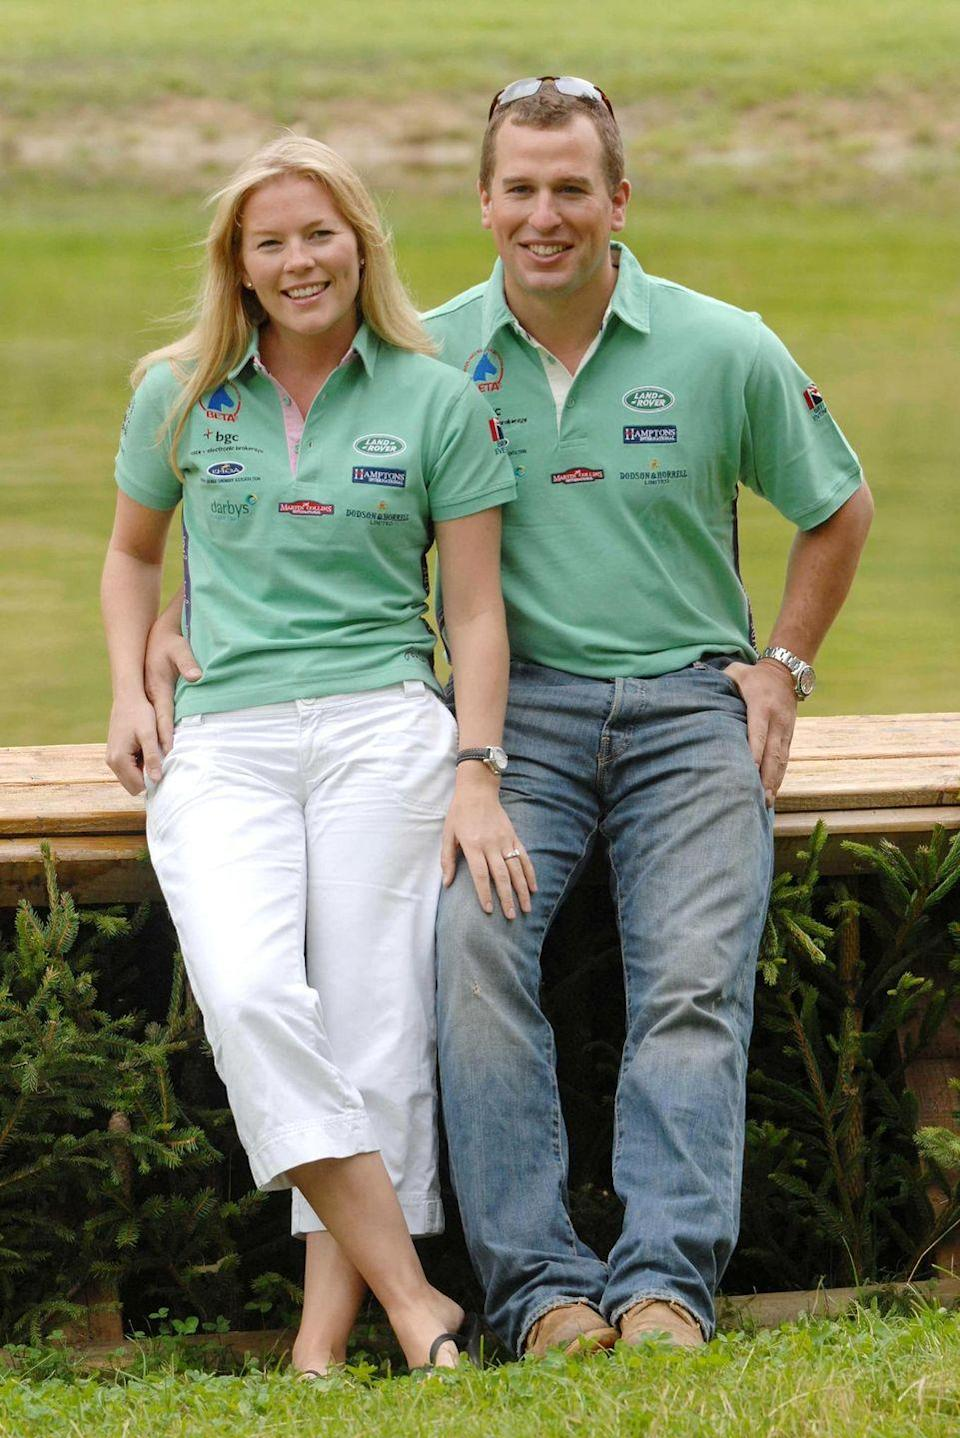 <p>Princess Anne's son, Peter Phillips, proposed to his Canadian girlfriend Autumn Kelly in 2007. The couple, pictured here at the Festival of British Eventing at Gatcombe Park, were later married at St. George's Chapel in Windsor Castle. </p>